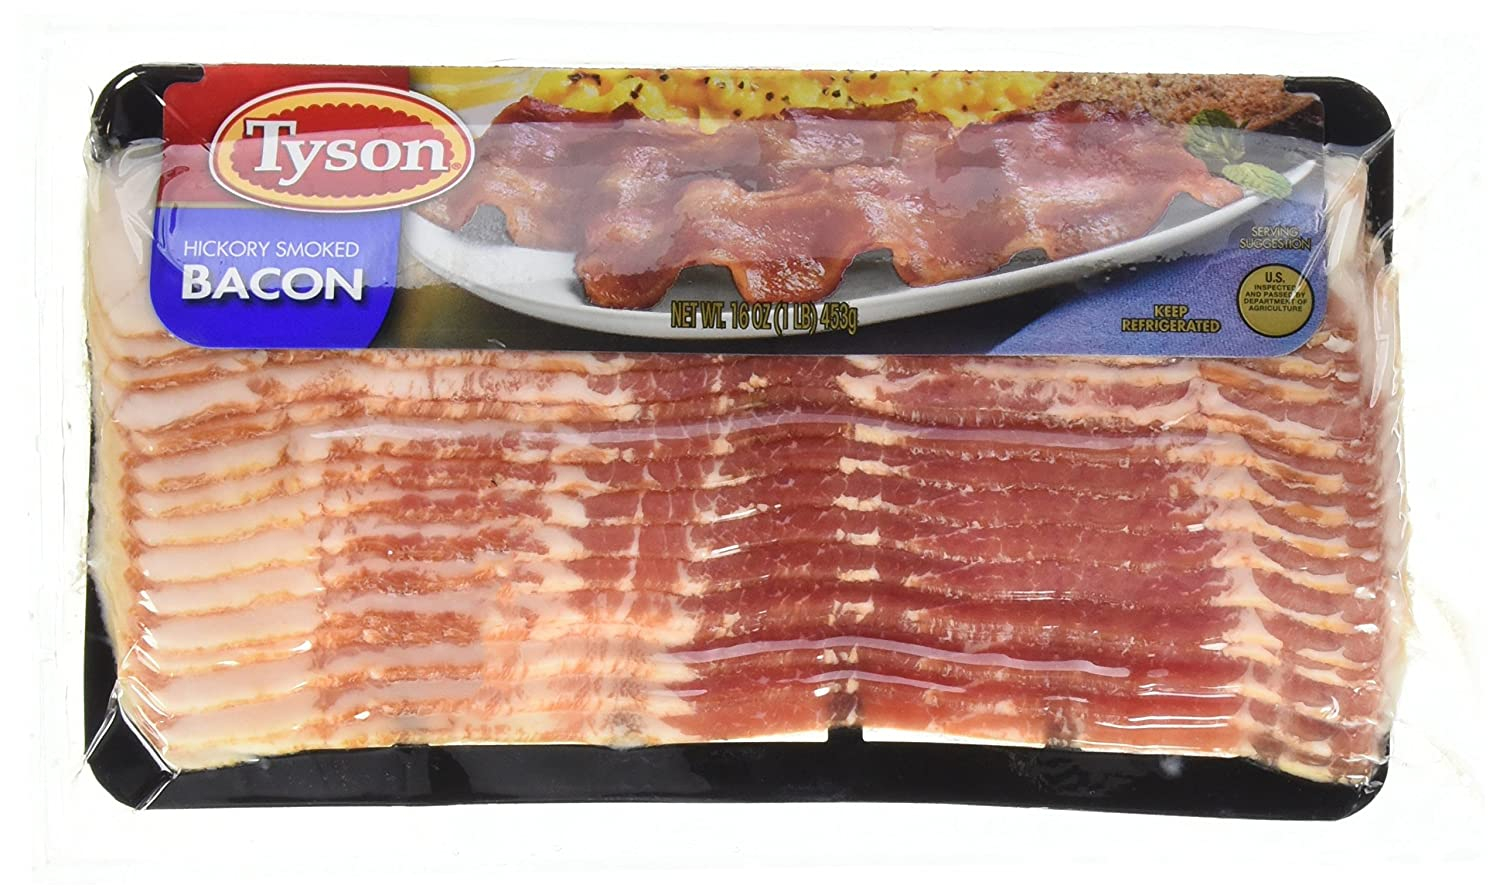 Tyson Hickory Smoked Bacon 16 Oz Amazon Com Grocery Gourmet Food